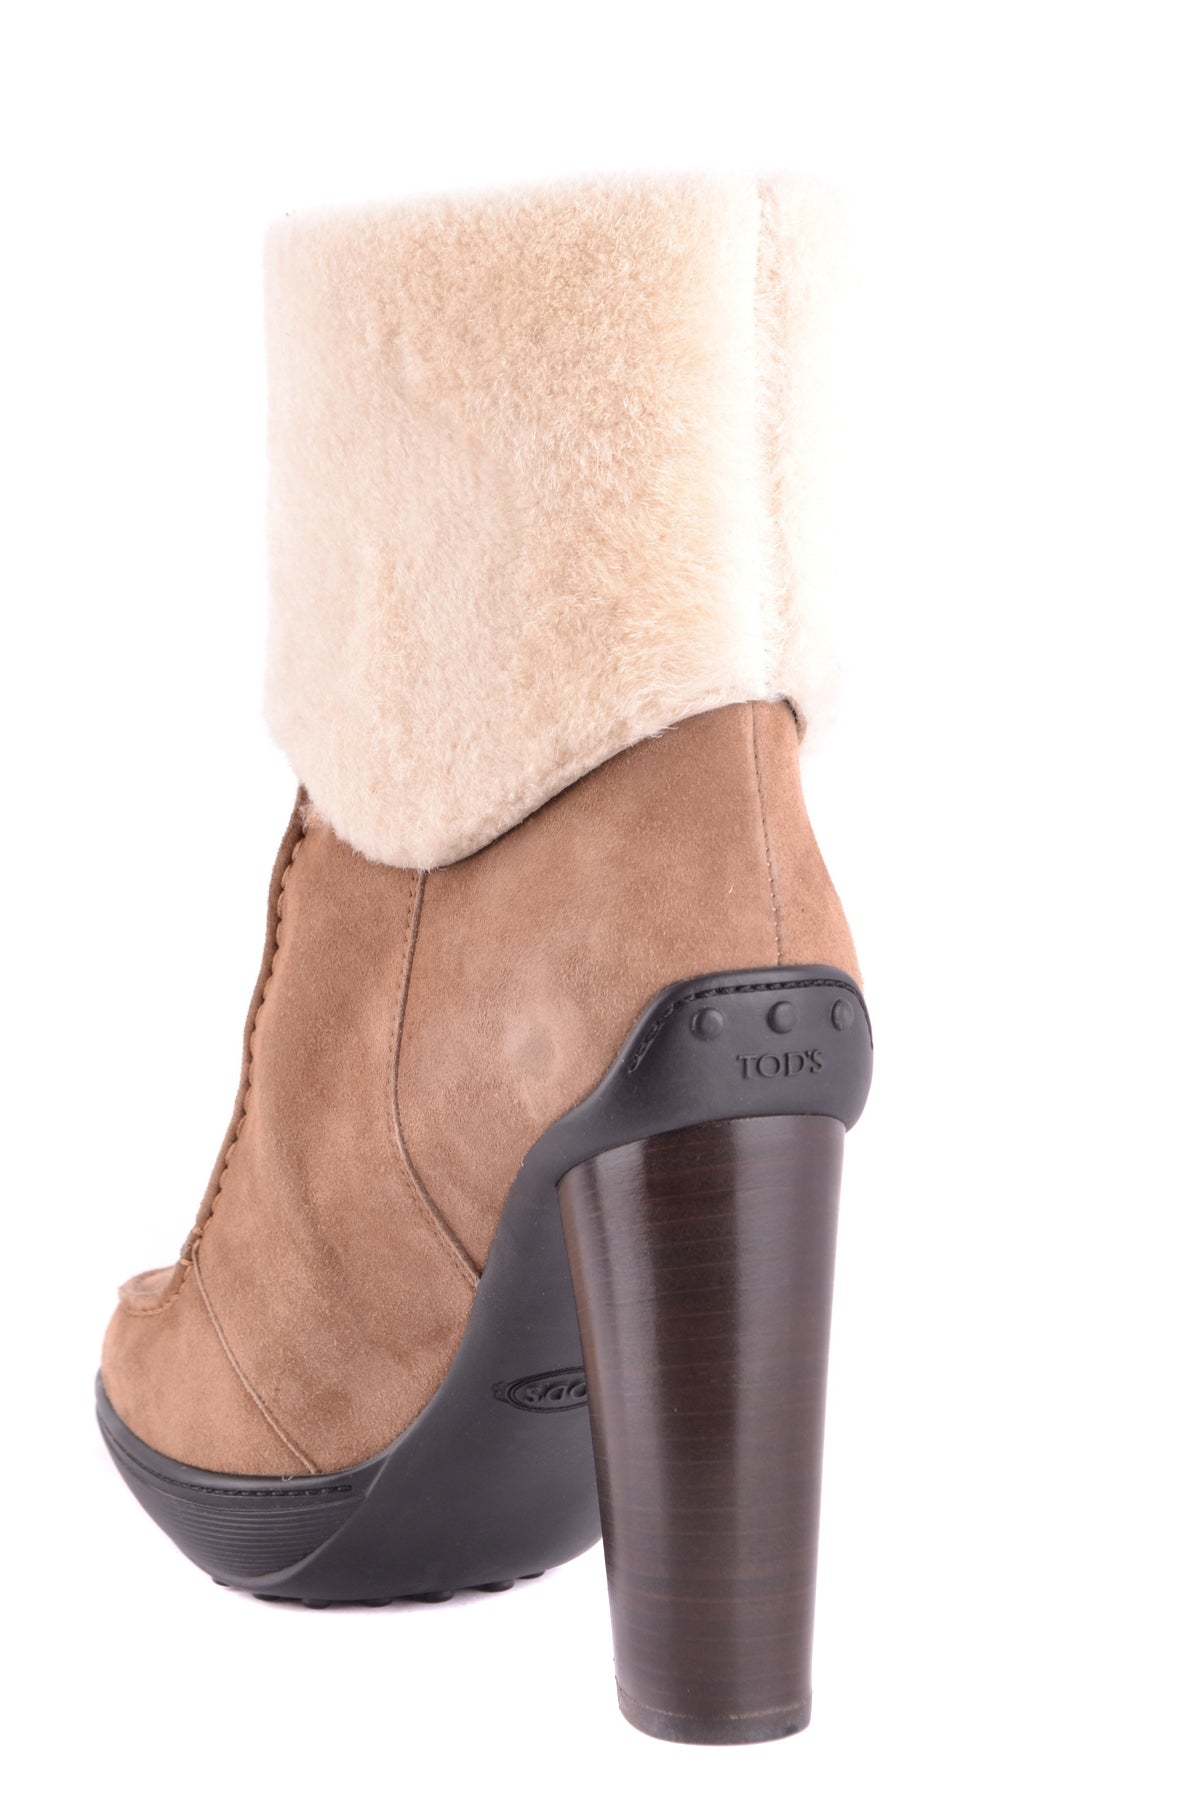 Shoes Tod'S-Boots with fur - WOMAN-Product Details Type Of Accessory: ShoesTerms: New With LabelYear: 2017Main Color: MarrónGender: WomanMade In: ItalySize: EuSeason: Fall / WinterComposition: Leather 100%-Keyomi-Sook